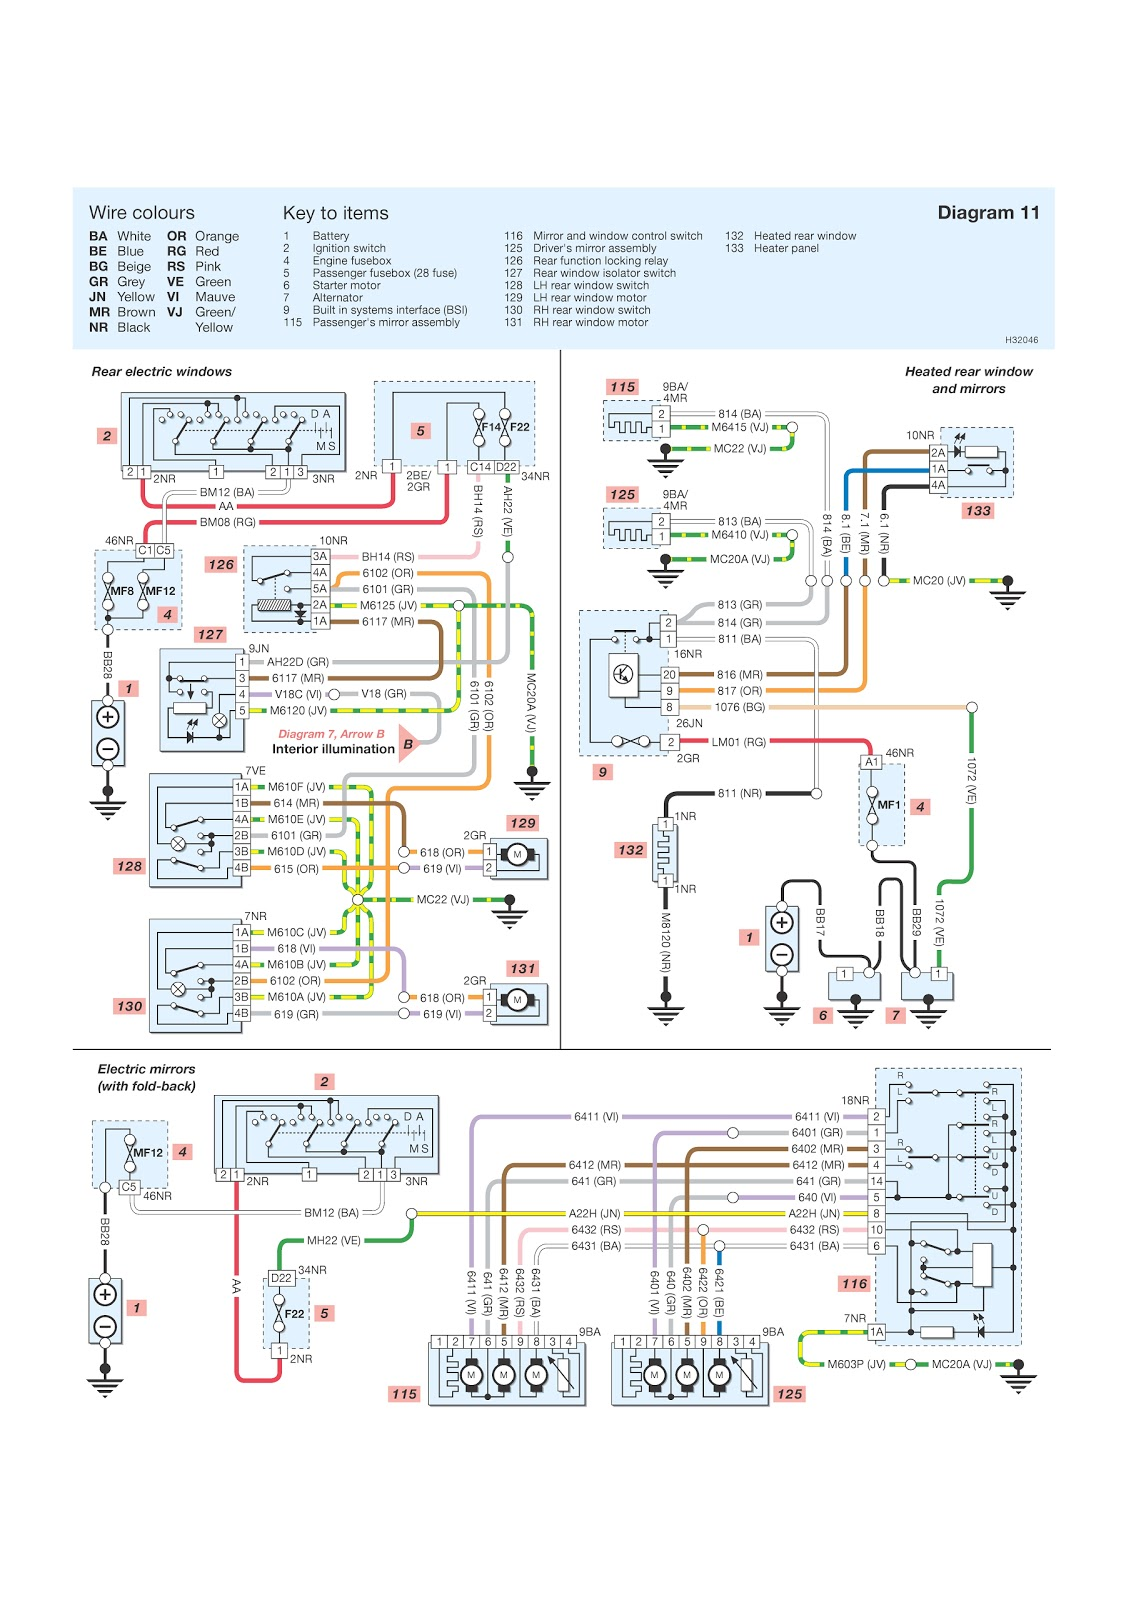 Peugeot Ac Wiring Diagram - Wiring Diagram Schematic Name on portable air conditioners wiring diagrams, hvac wiring diagrams, trane air conditioners wiring diagrams, heating and cooling wiring diagrams, panasonic wiring diagrams, york air conditioners wiring diagrams, midea wiring diagrams, carrier wiring diagrams, mitsubishi hvac installation diagram, electrical wiring diagrams, mitsubishi eclipse ac diagram, trane rooftop ac wiring diagrams, mitsubishi electric split system thermostat, mitsubishi car radio wiring diagram, mitsubishi lancer ac system diagram, whirlpool wiring diagrams,